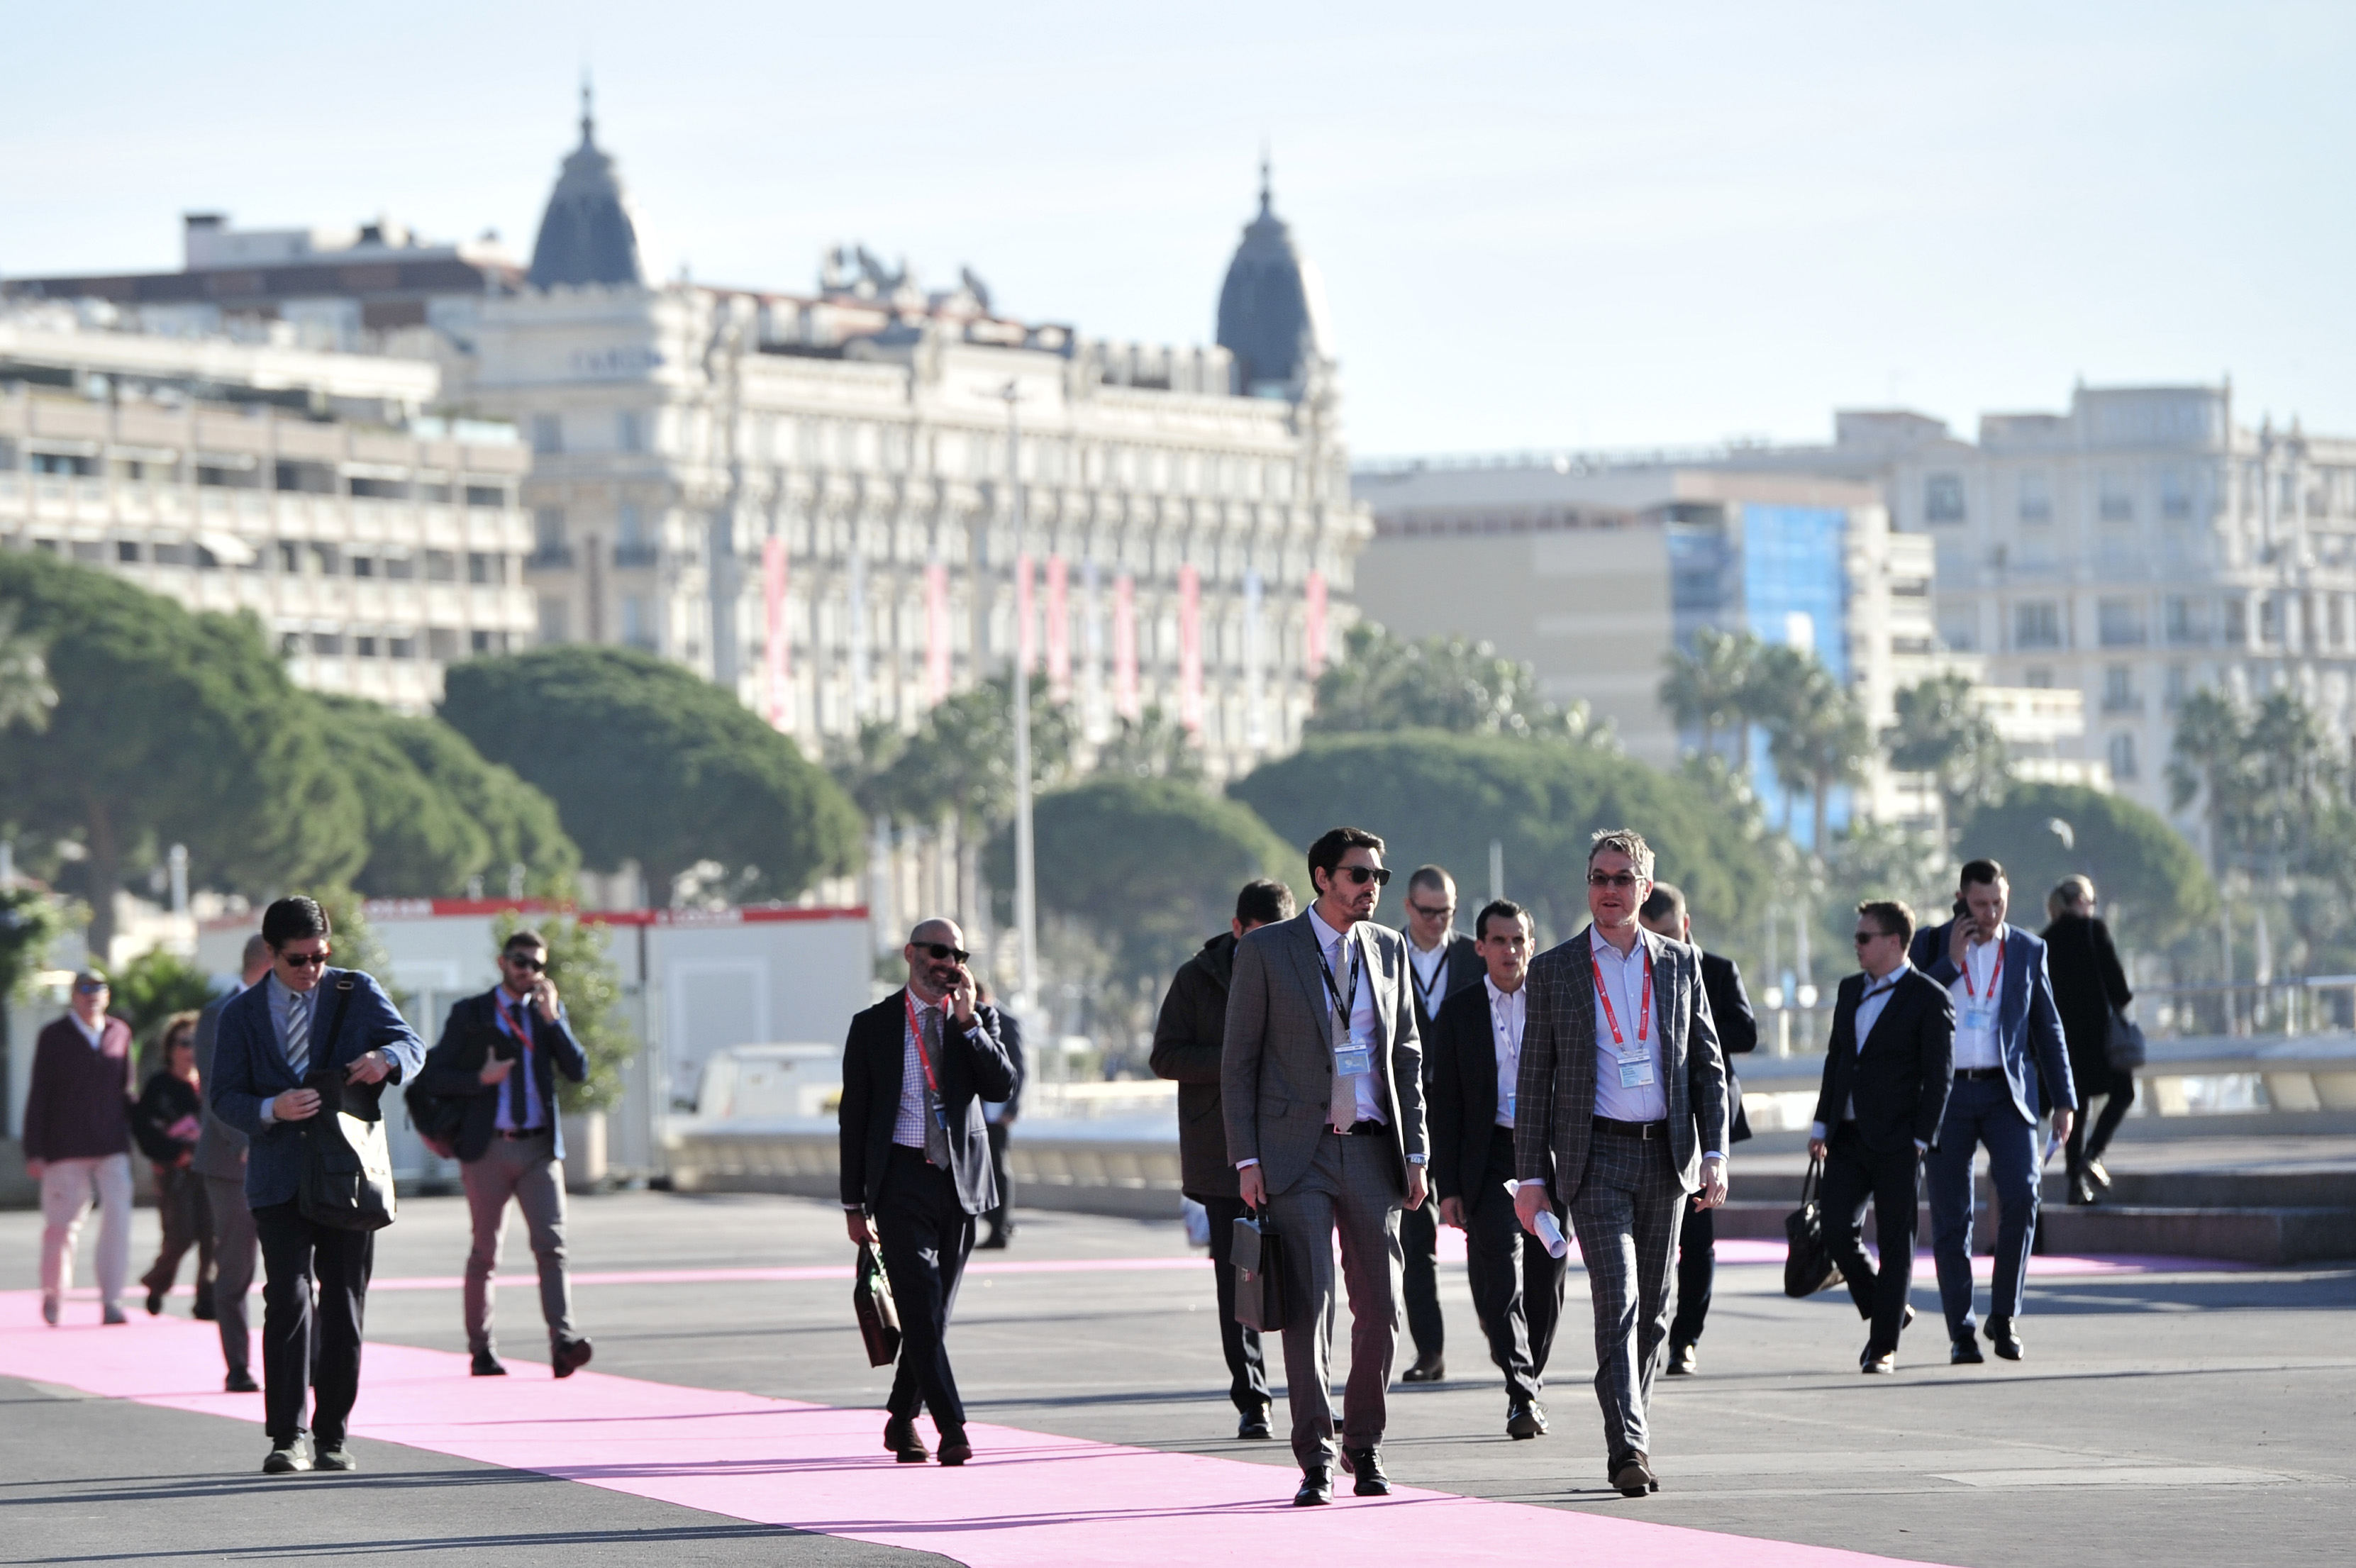 Mapic real estate conference in Cannes, France